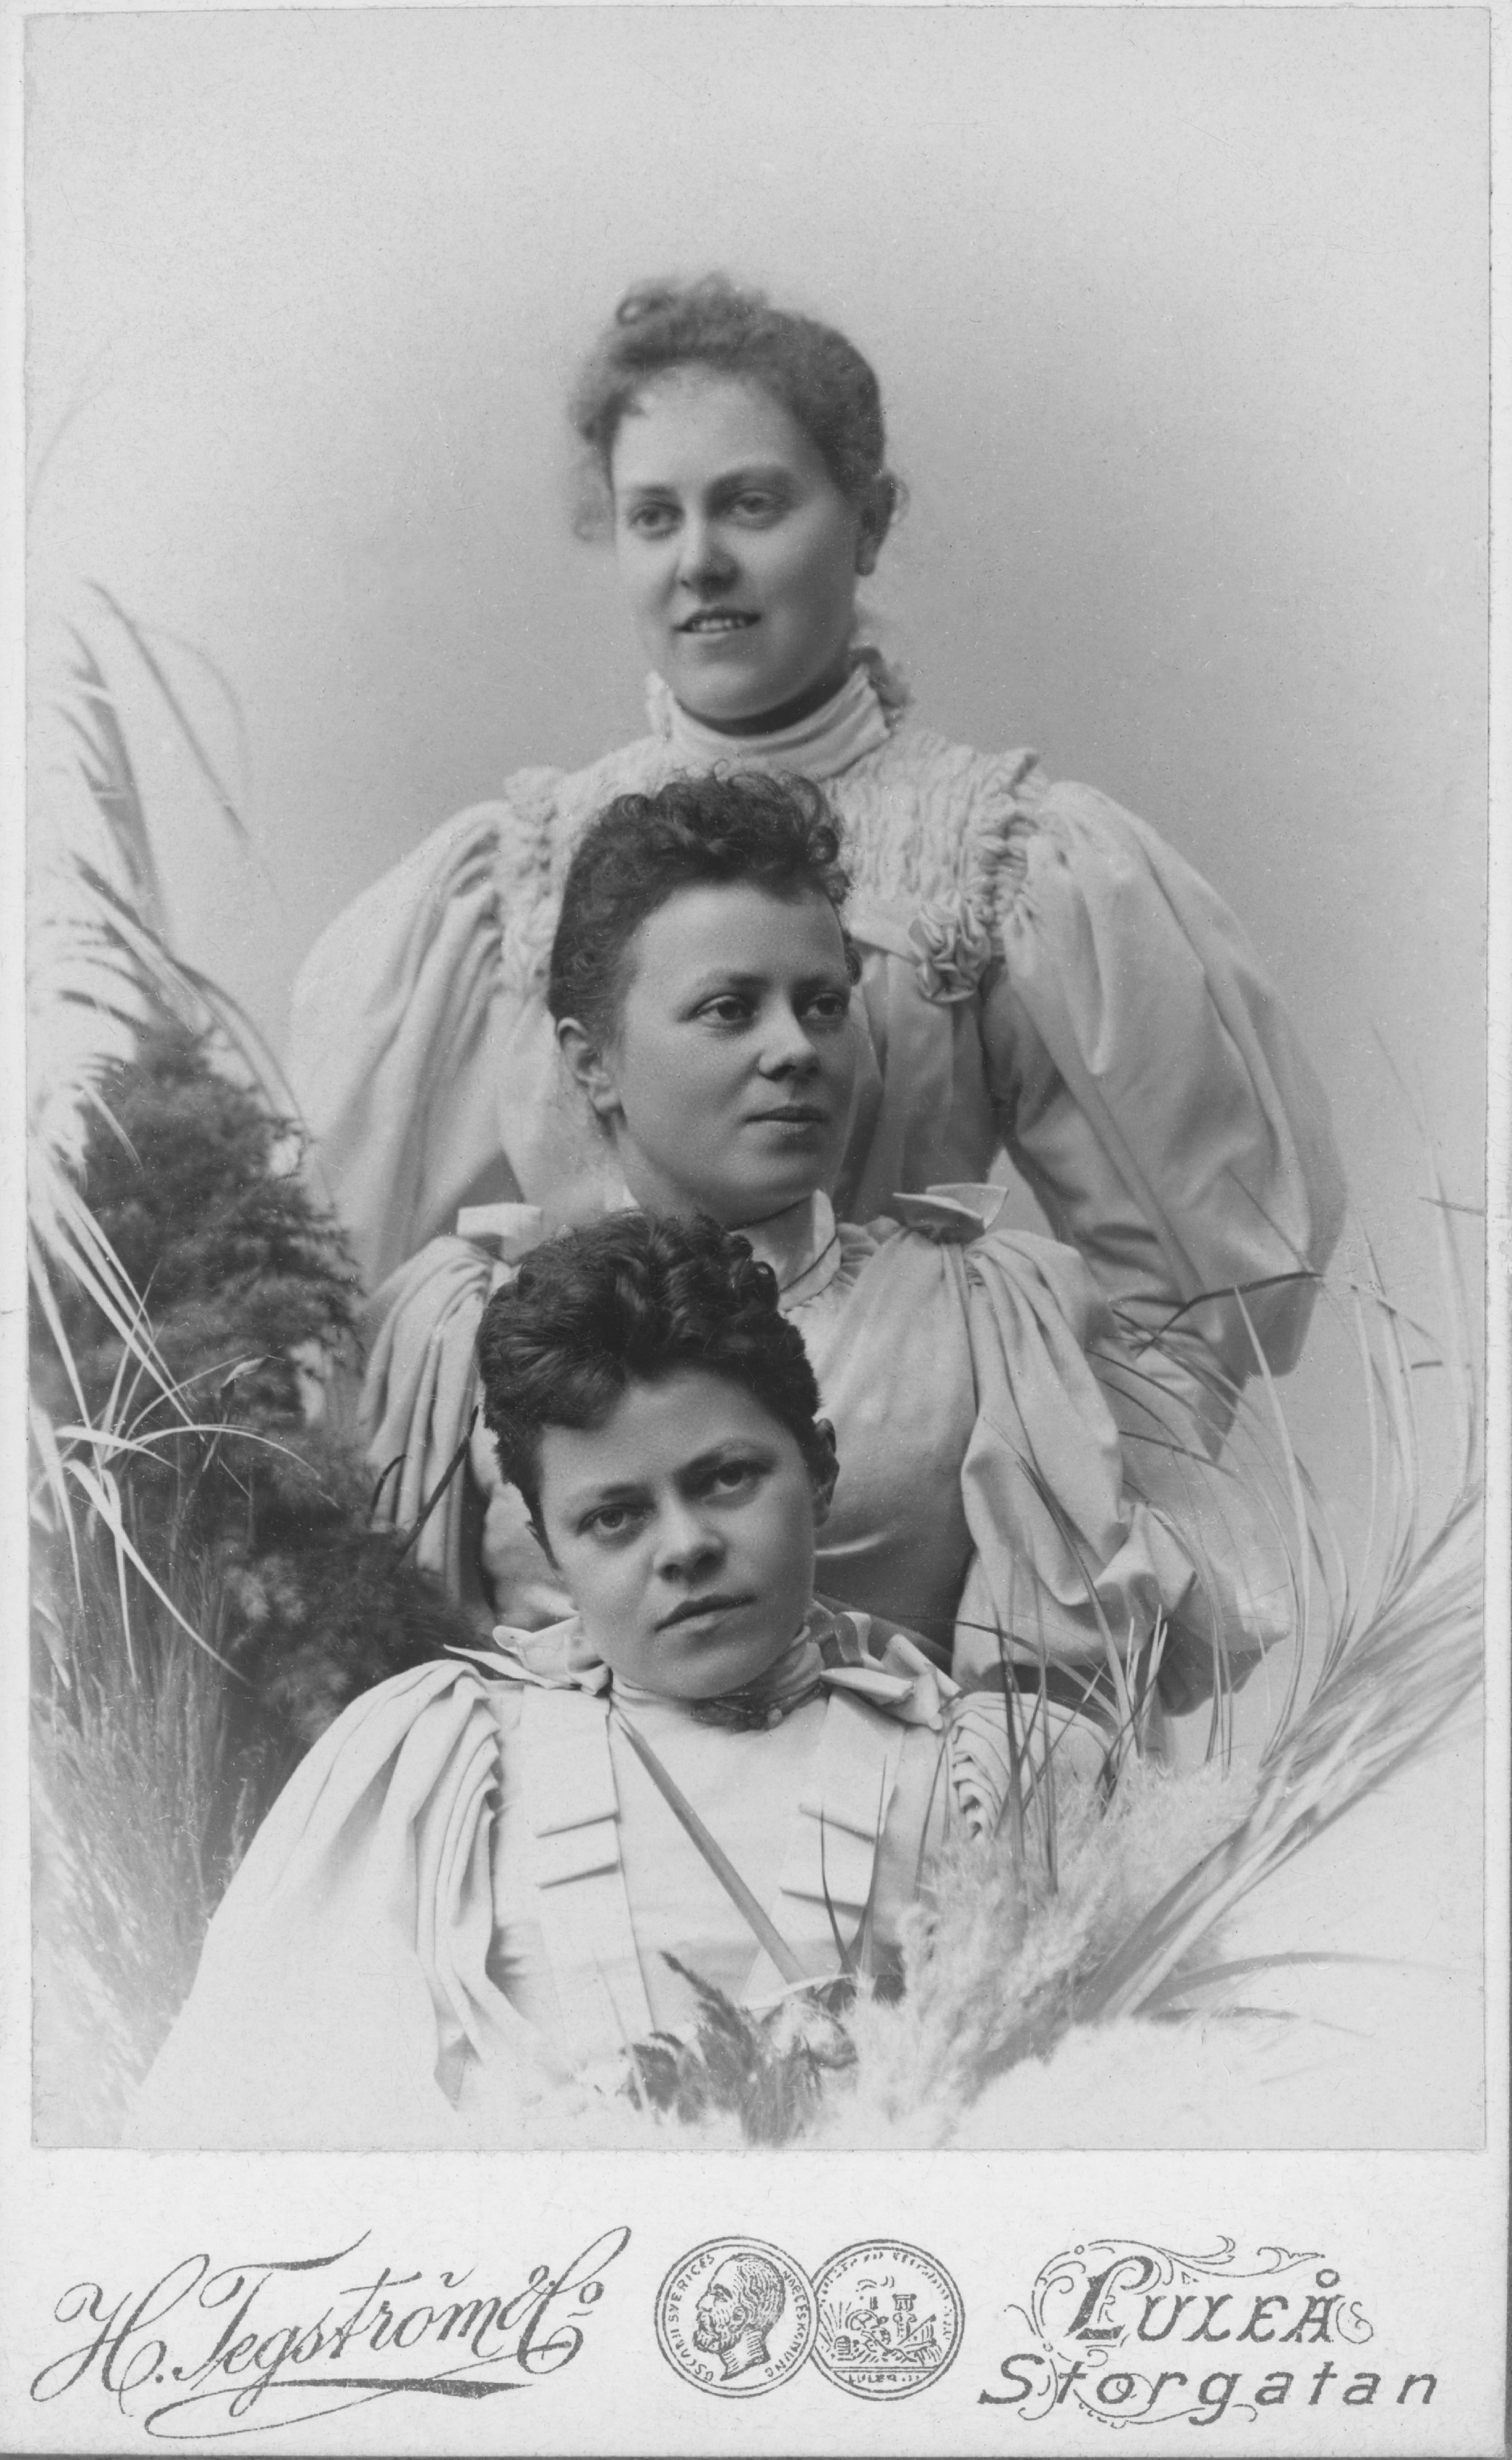 Tegström sisters, from top to bottom: Henny, Agda and Alma. Self-portrait, 1898 (Luleå kommuns stadsarkiv, 20100039000035)